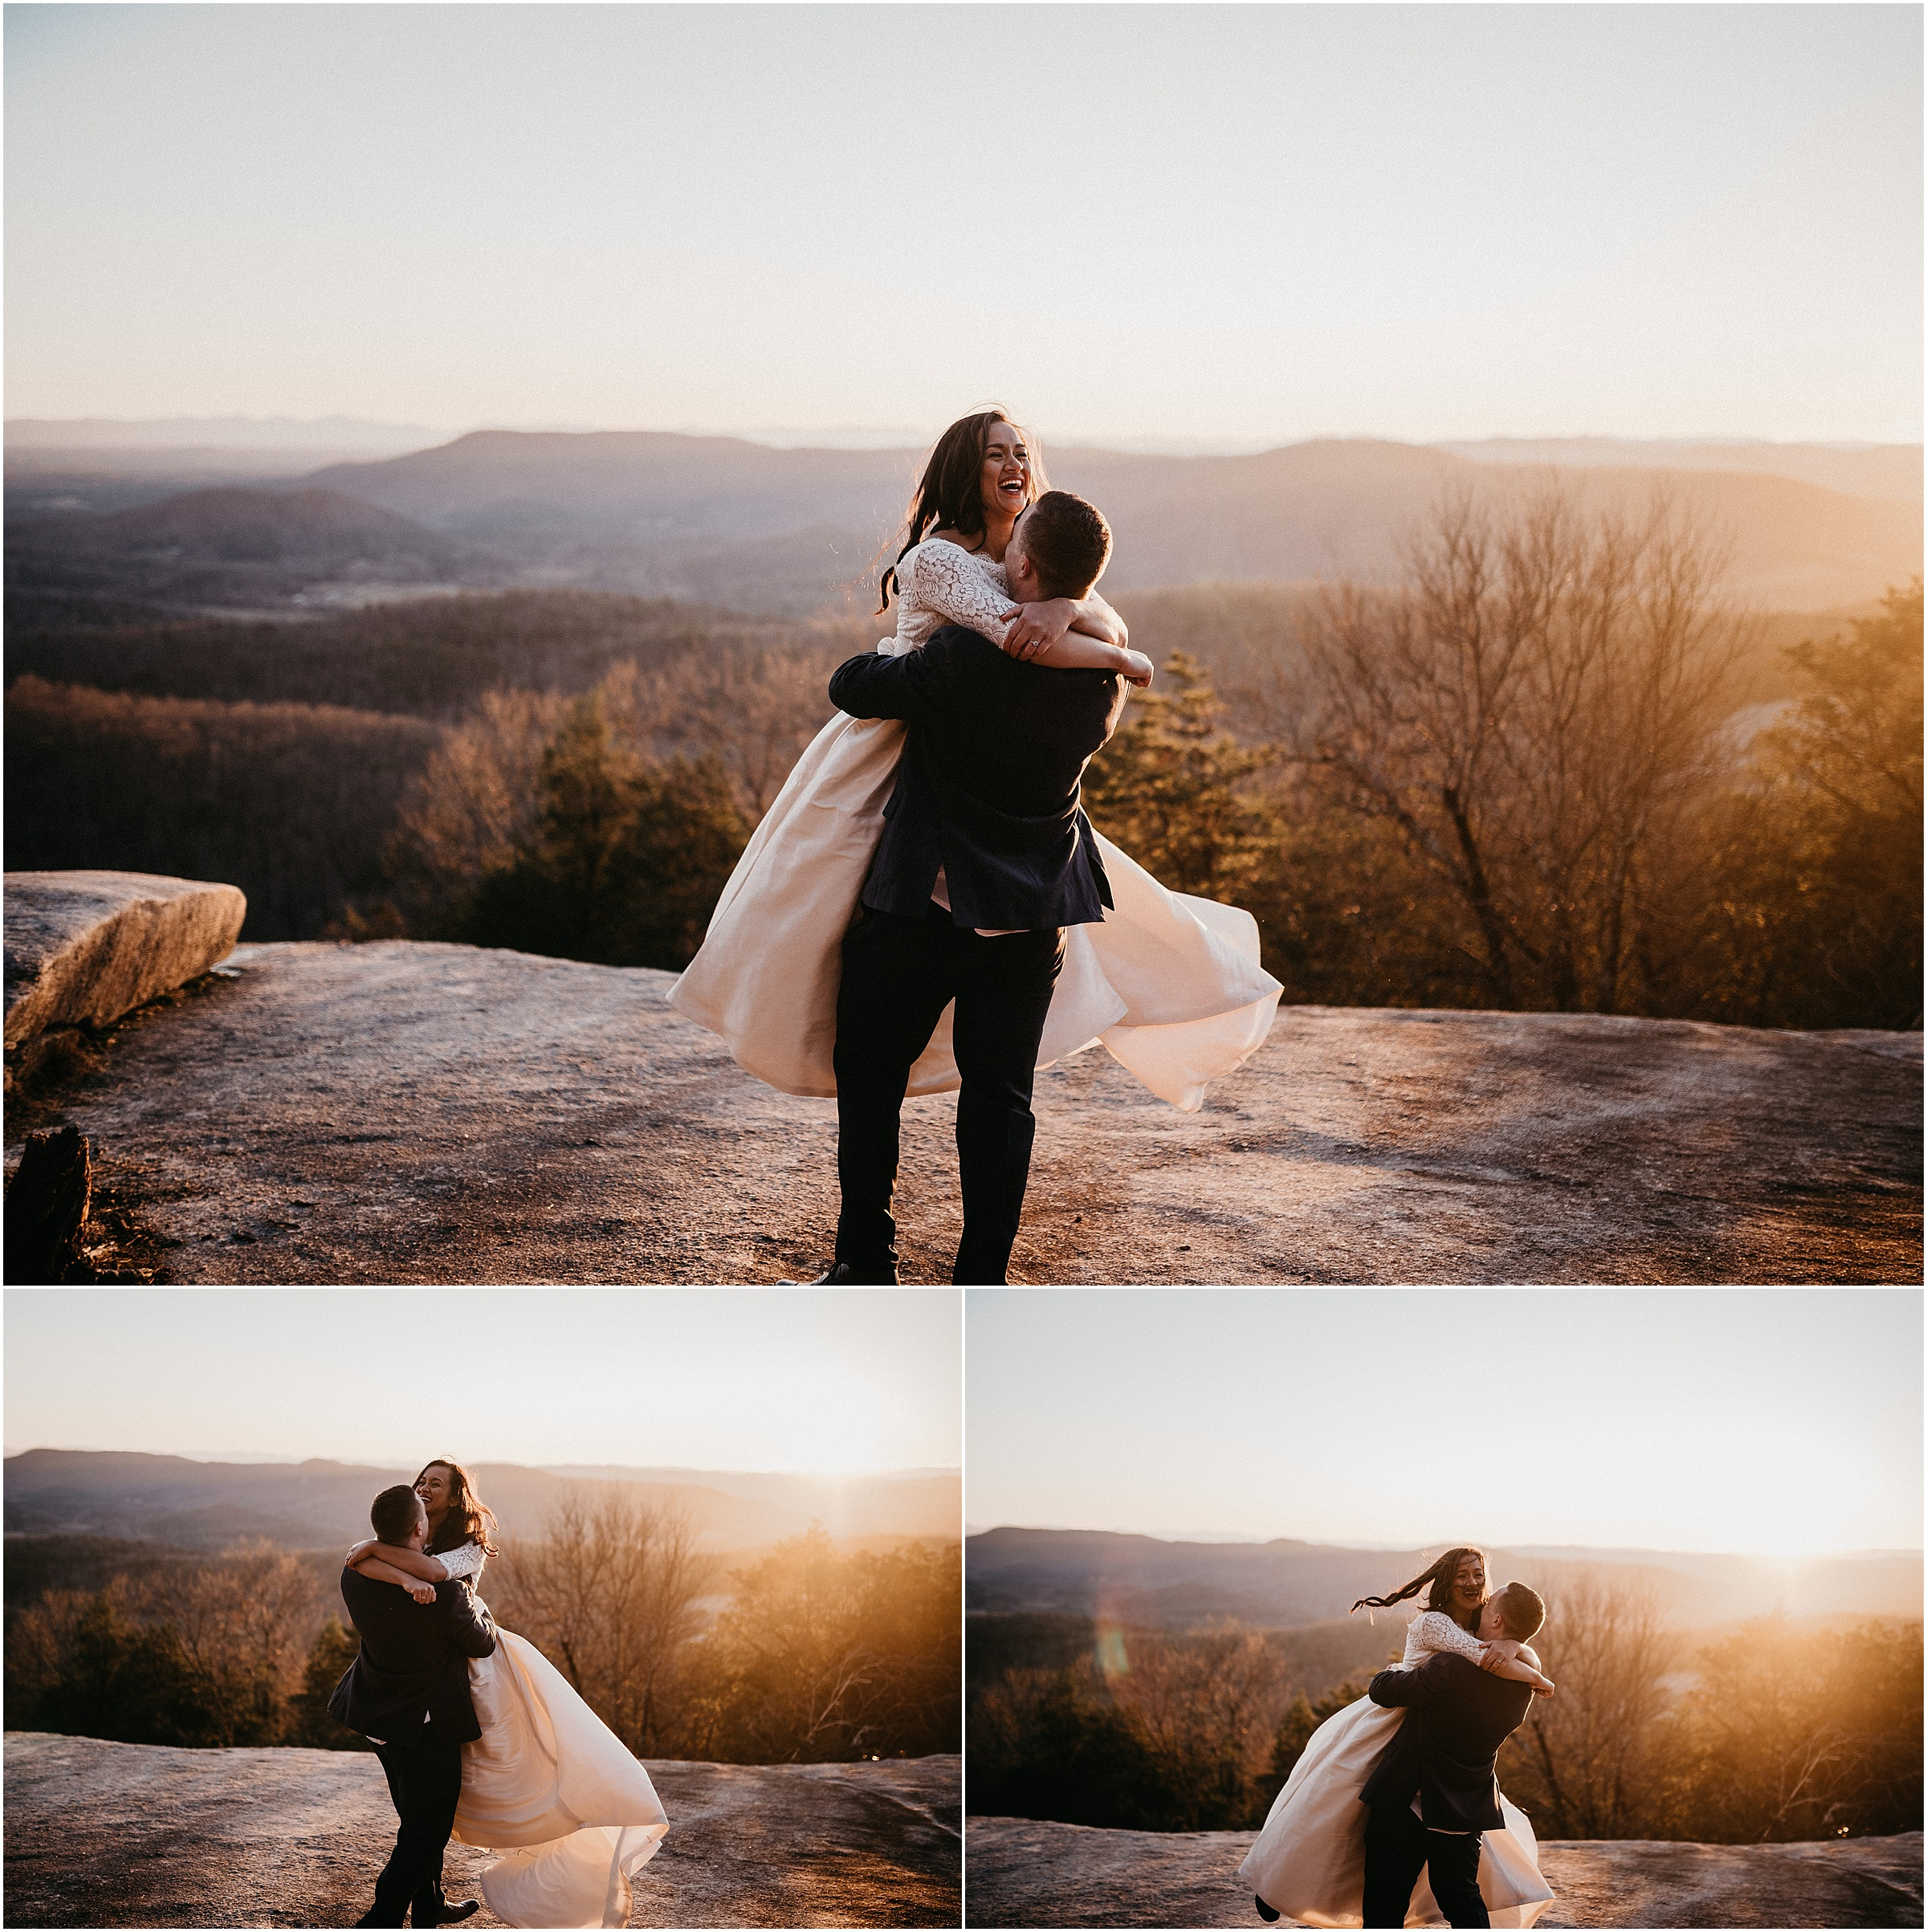 Stone_Mountain_NC_Elopement_42.JPG